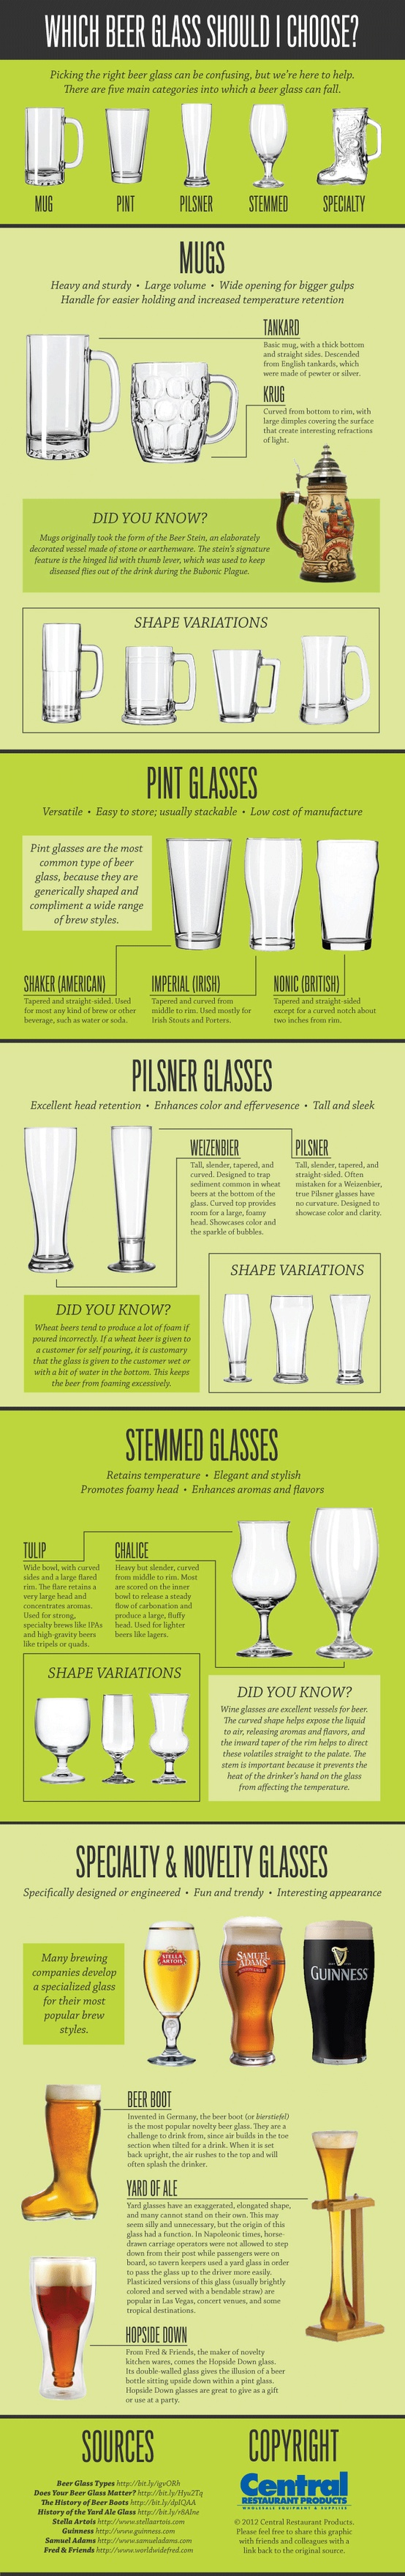 which-beer-glass